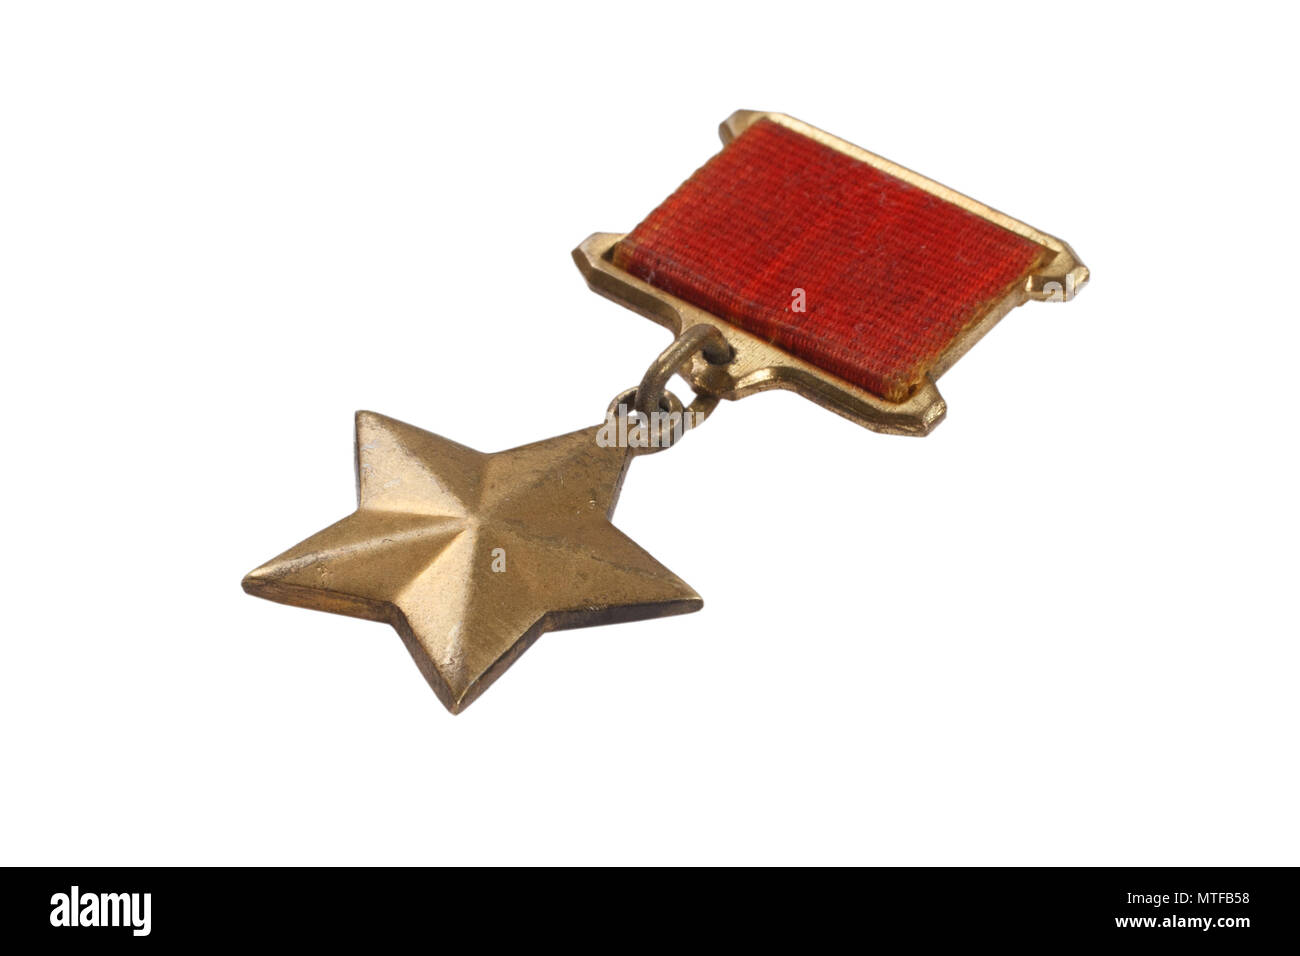 The Gold Star medal is a special insignia that identifies recipients of the title 'Hero' in the Soviet Union - Stock Image